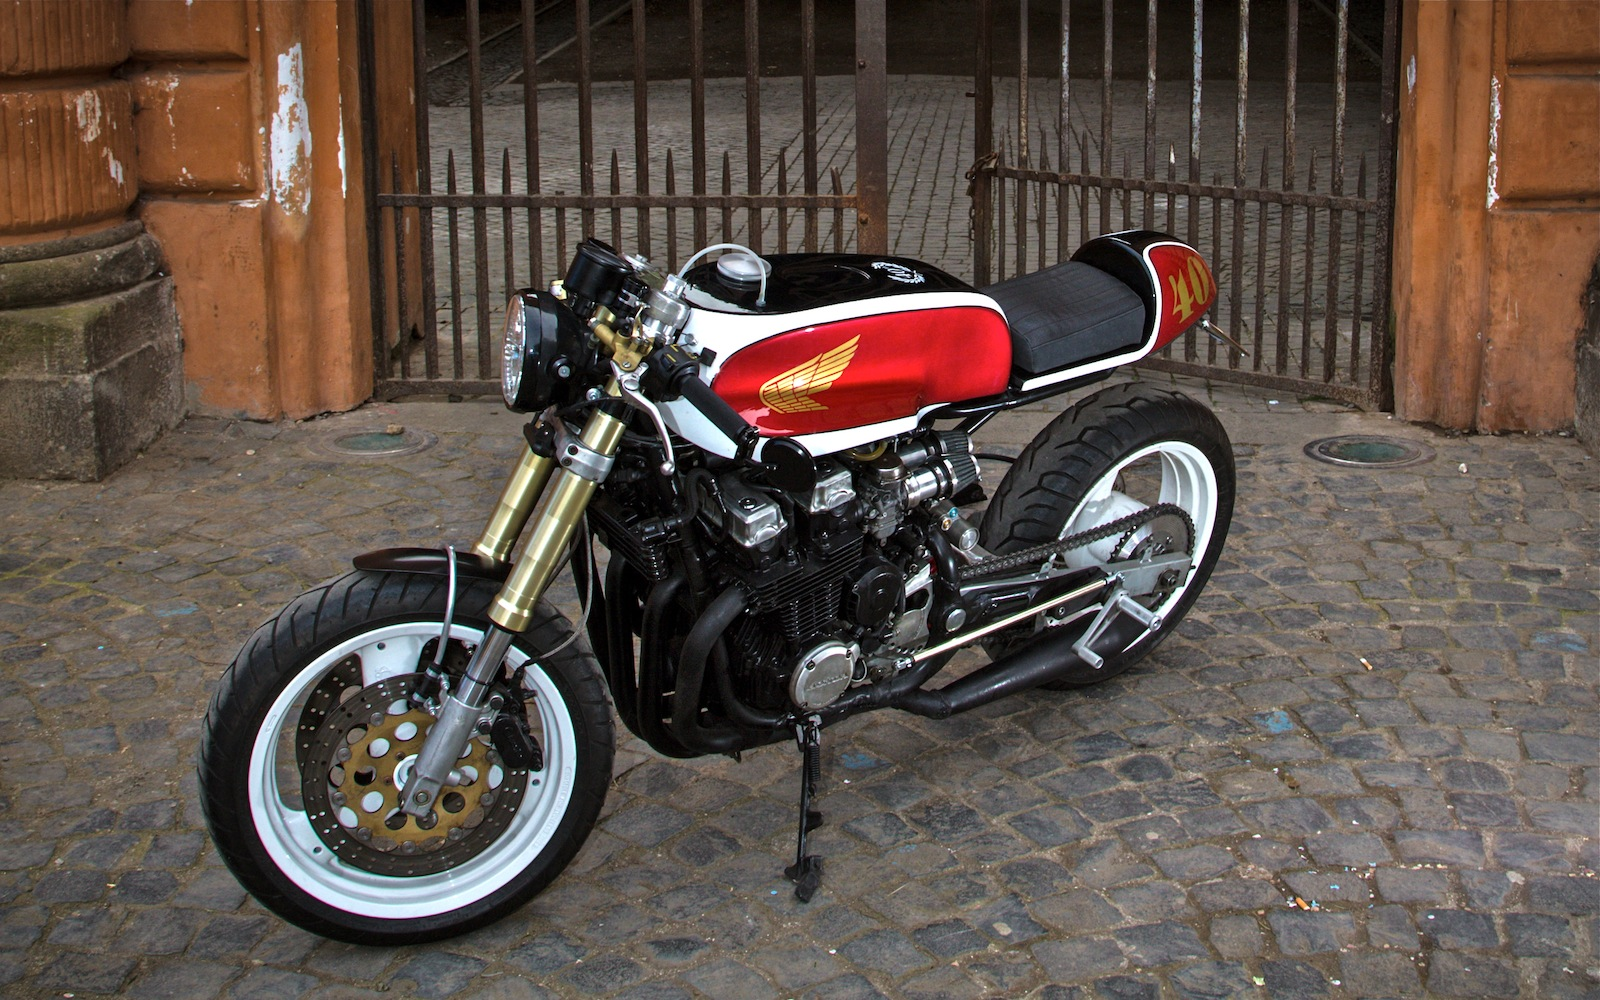 Honda Cbx 750 F1 Cafe Racer 99garage Cafe Racers